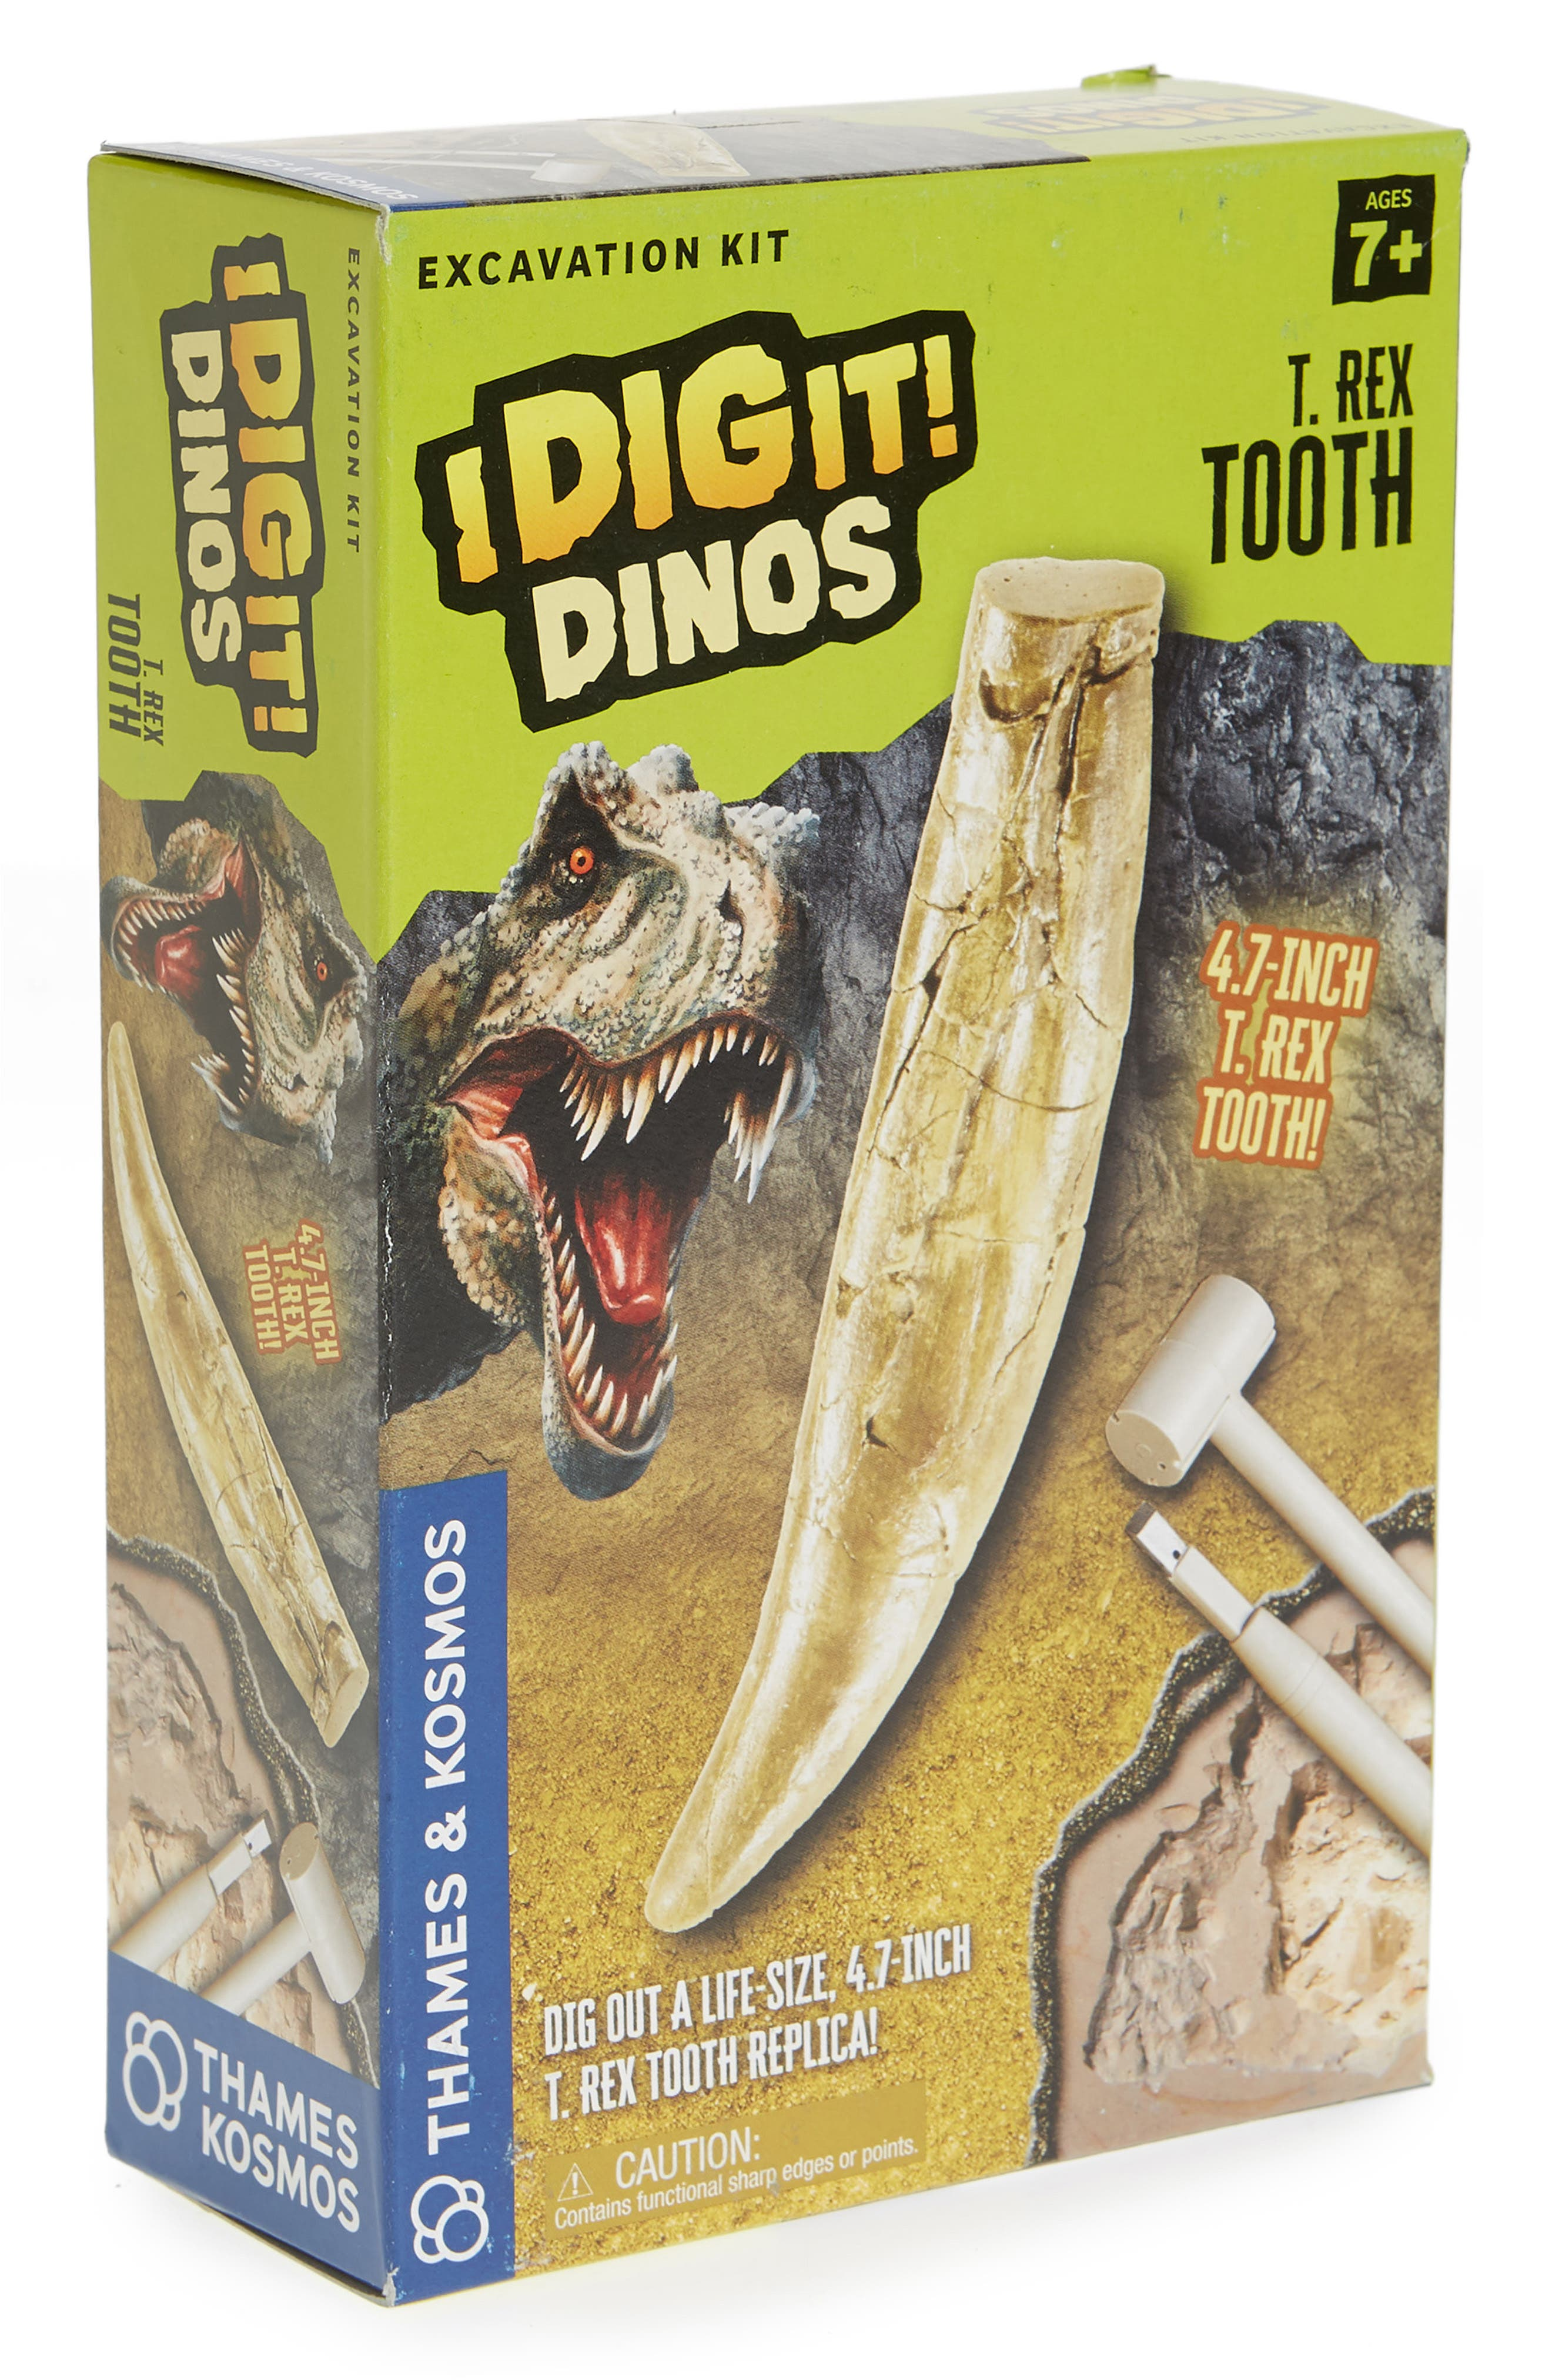 Alternate Image 1 Selected - Thames & Kosmos I Dig It! 5-Piece T-Rex Tooth Excavation Kit